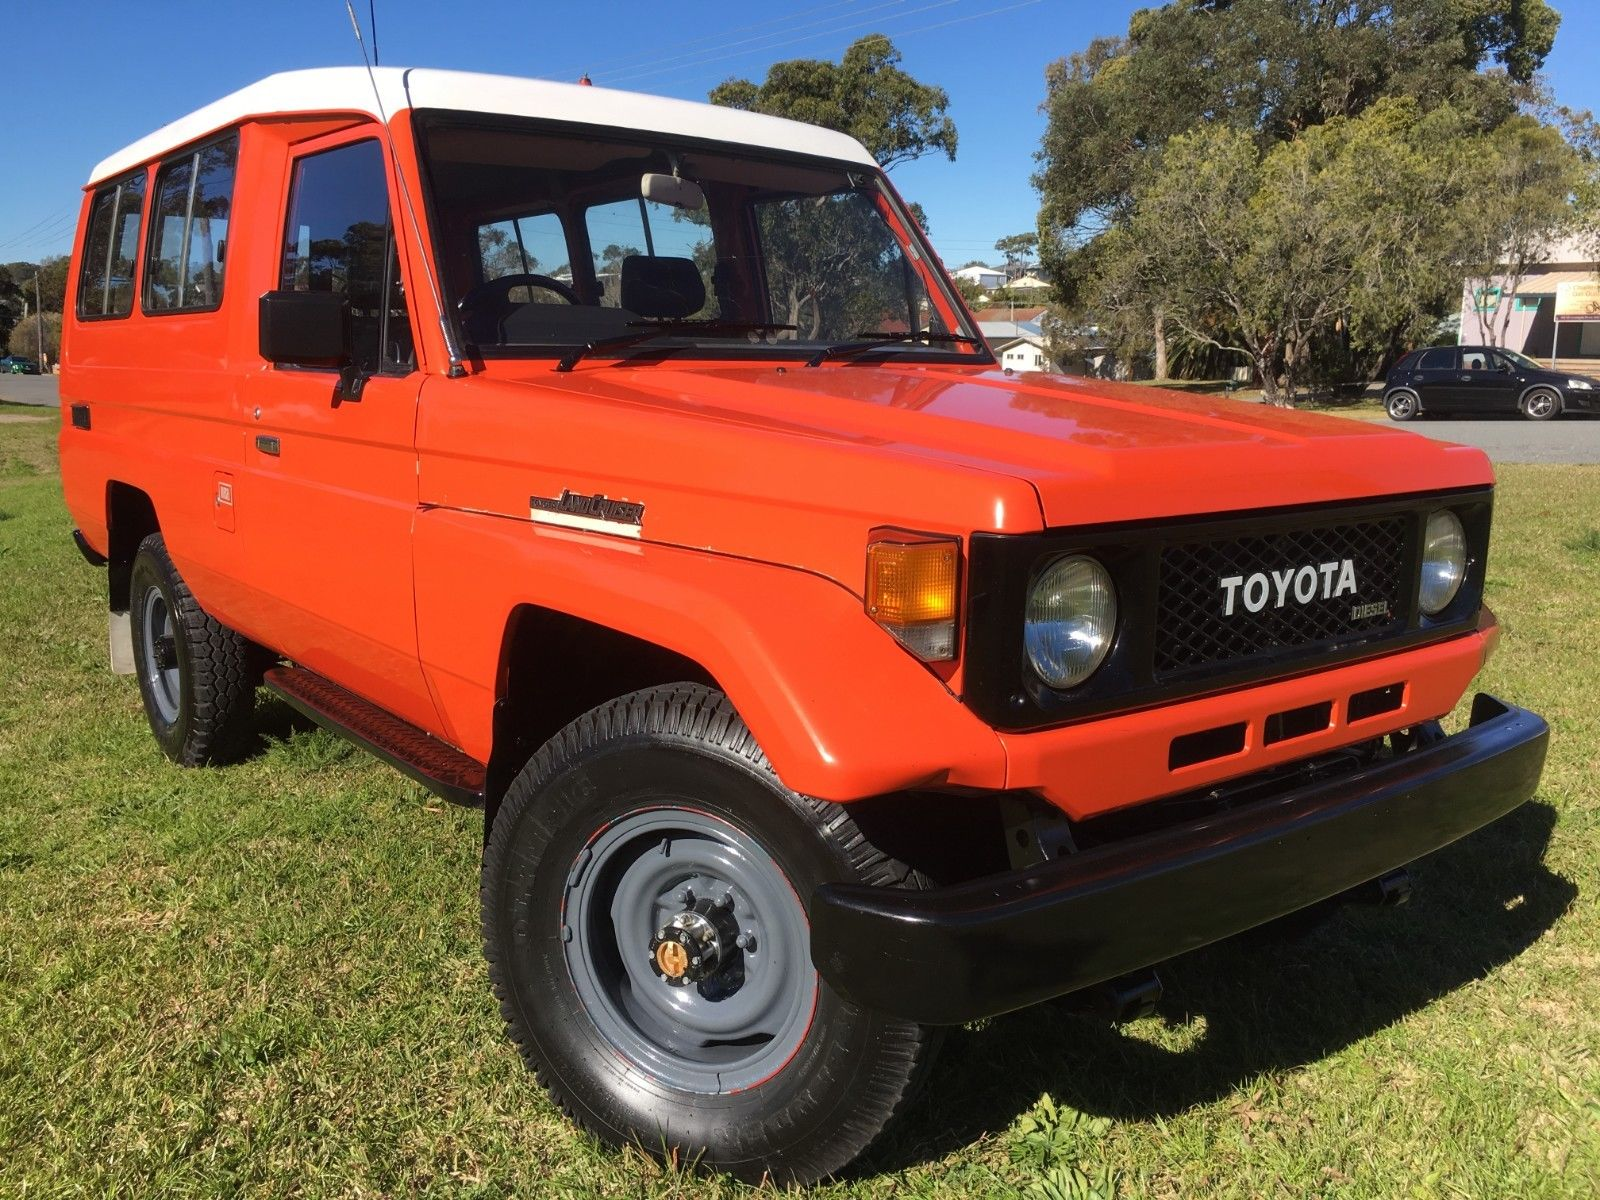 Land Rover Diesel For Sale >> rust free 1980 Toyota Land Cruiser offroad for sale